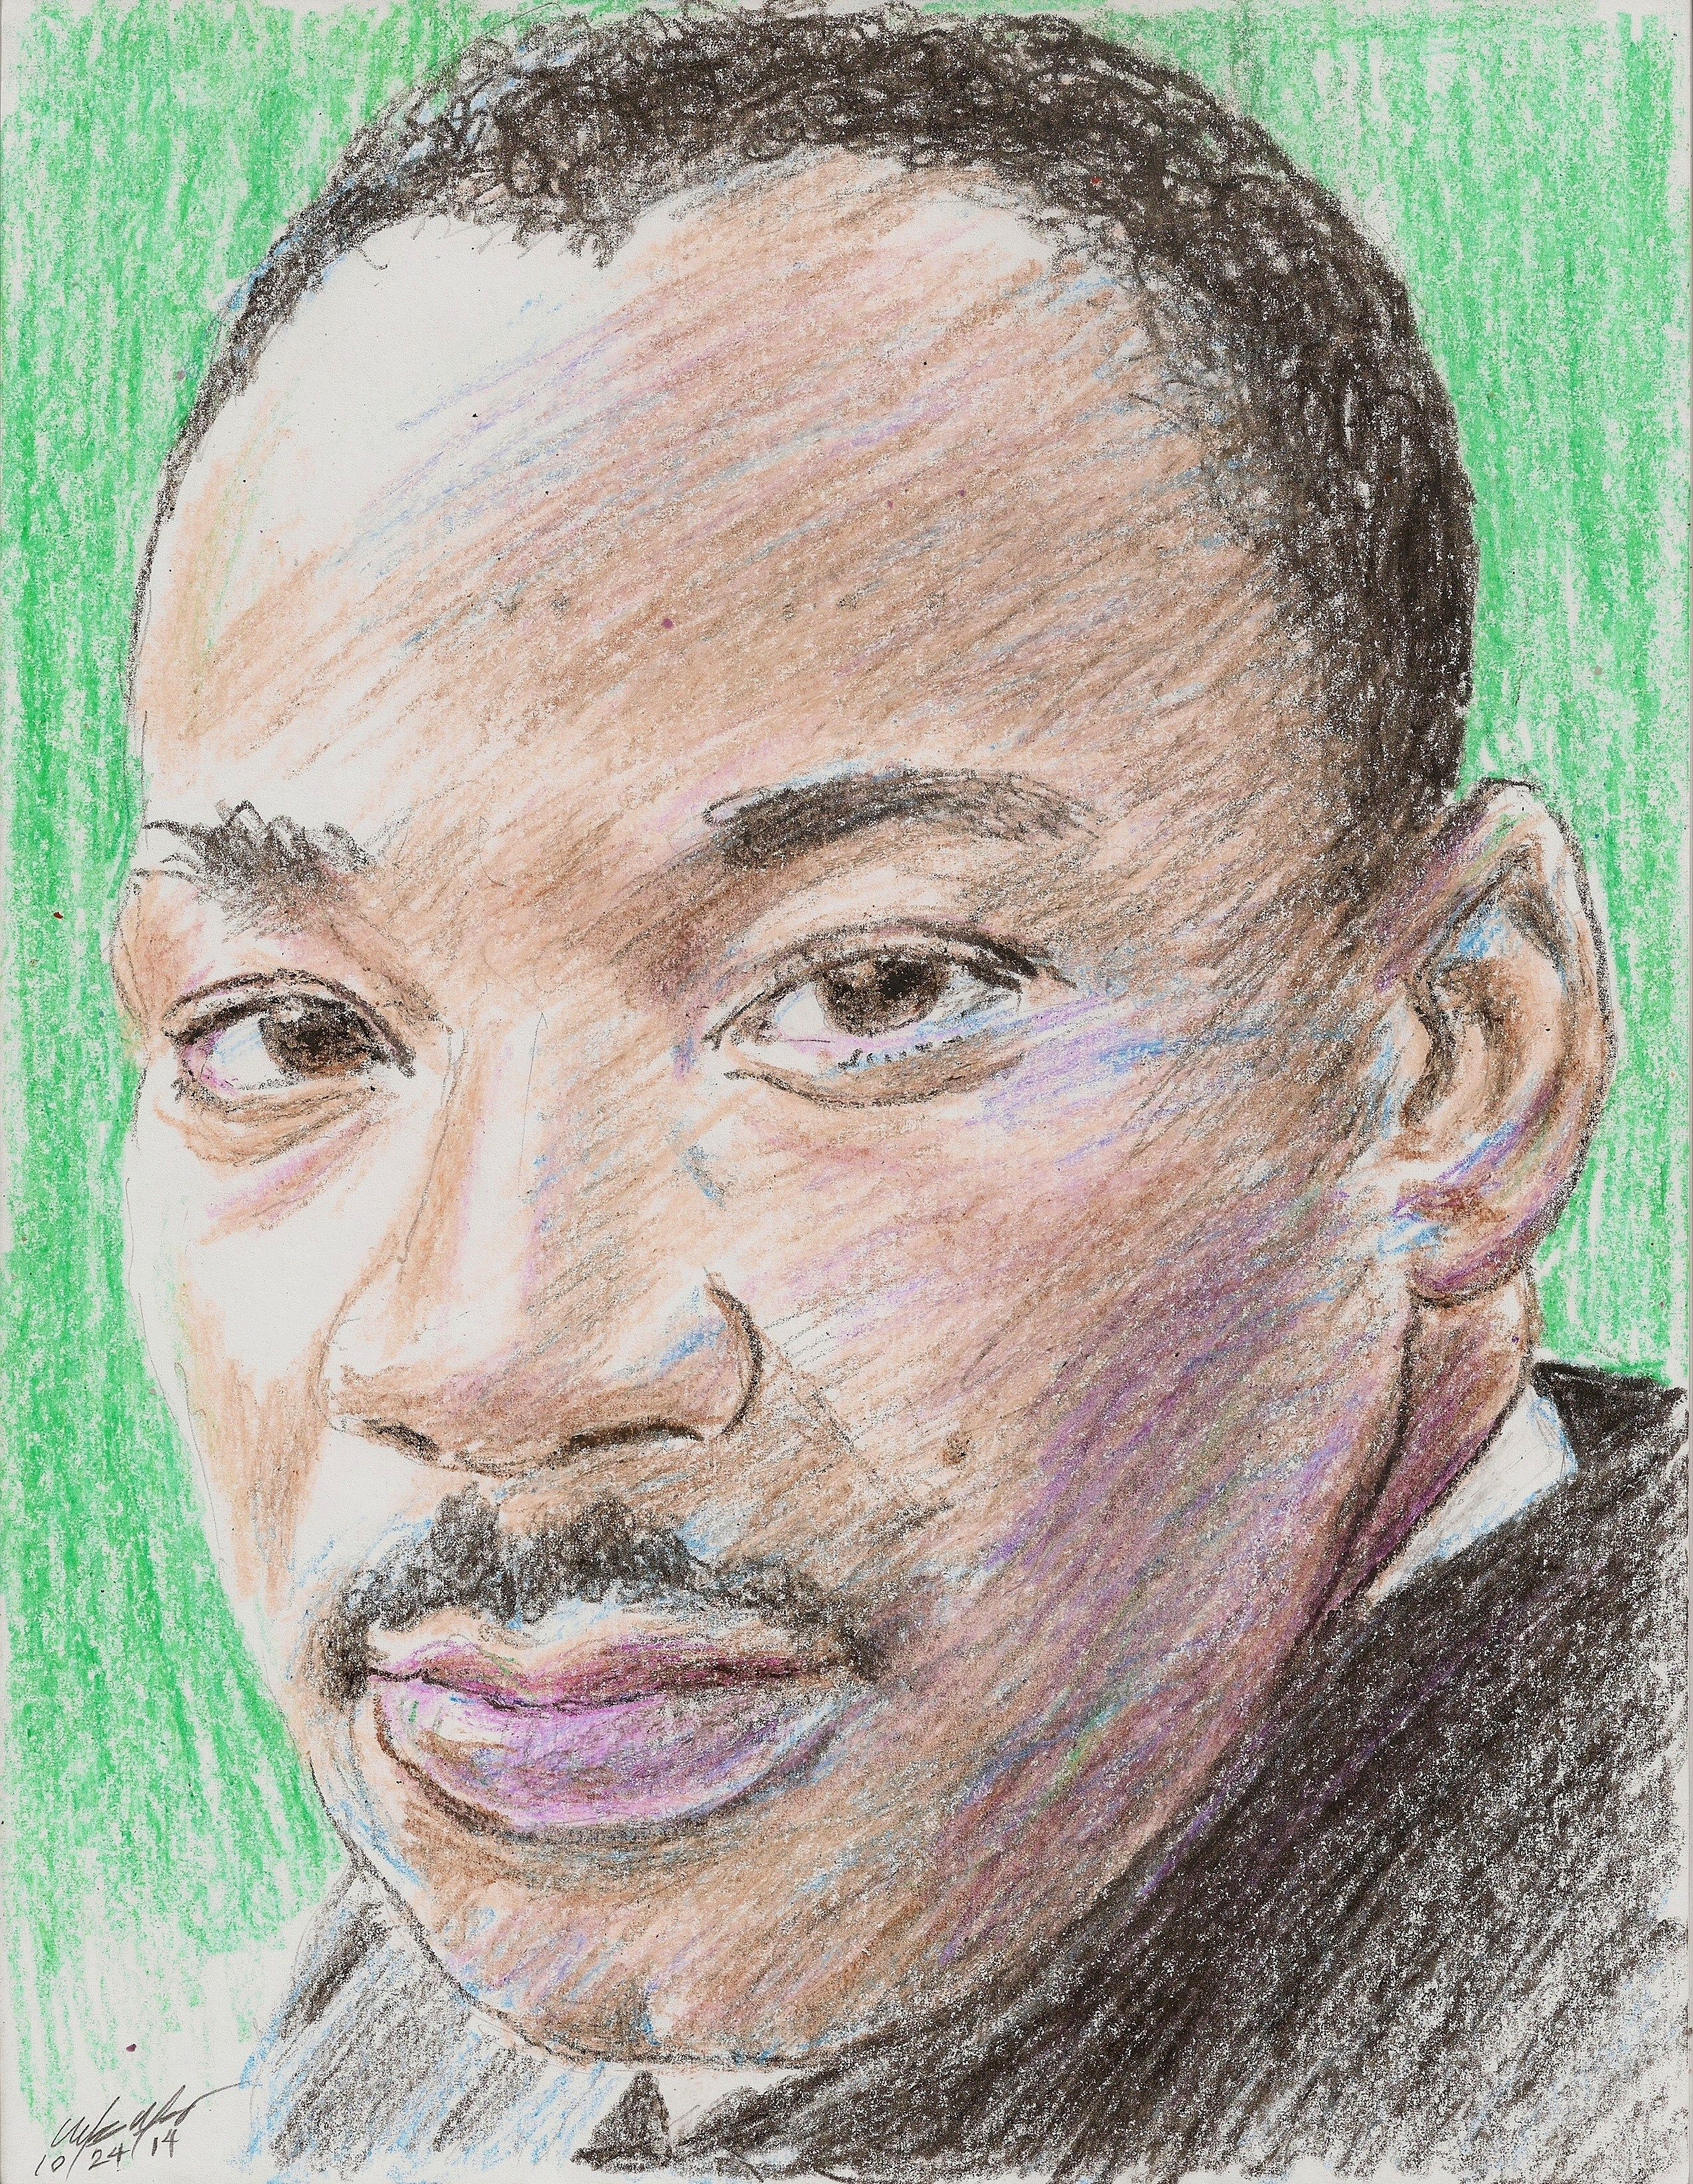 My Crayons Drawing Of The Reverend Dr Martin Luther King Jr